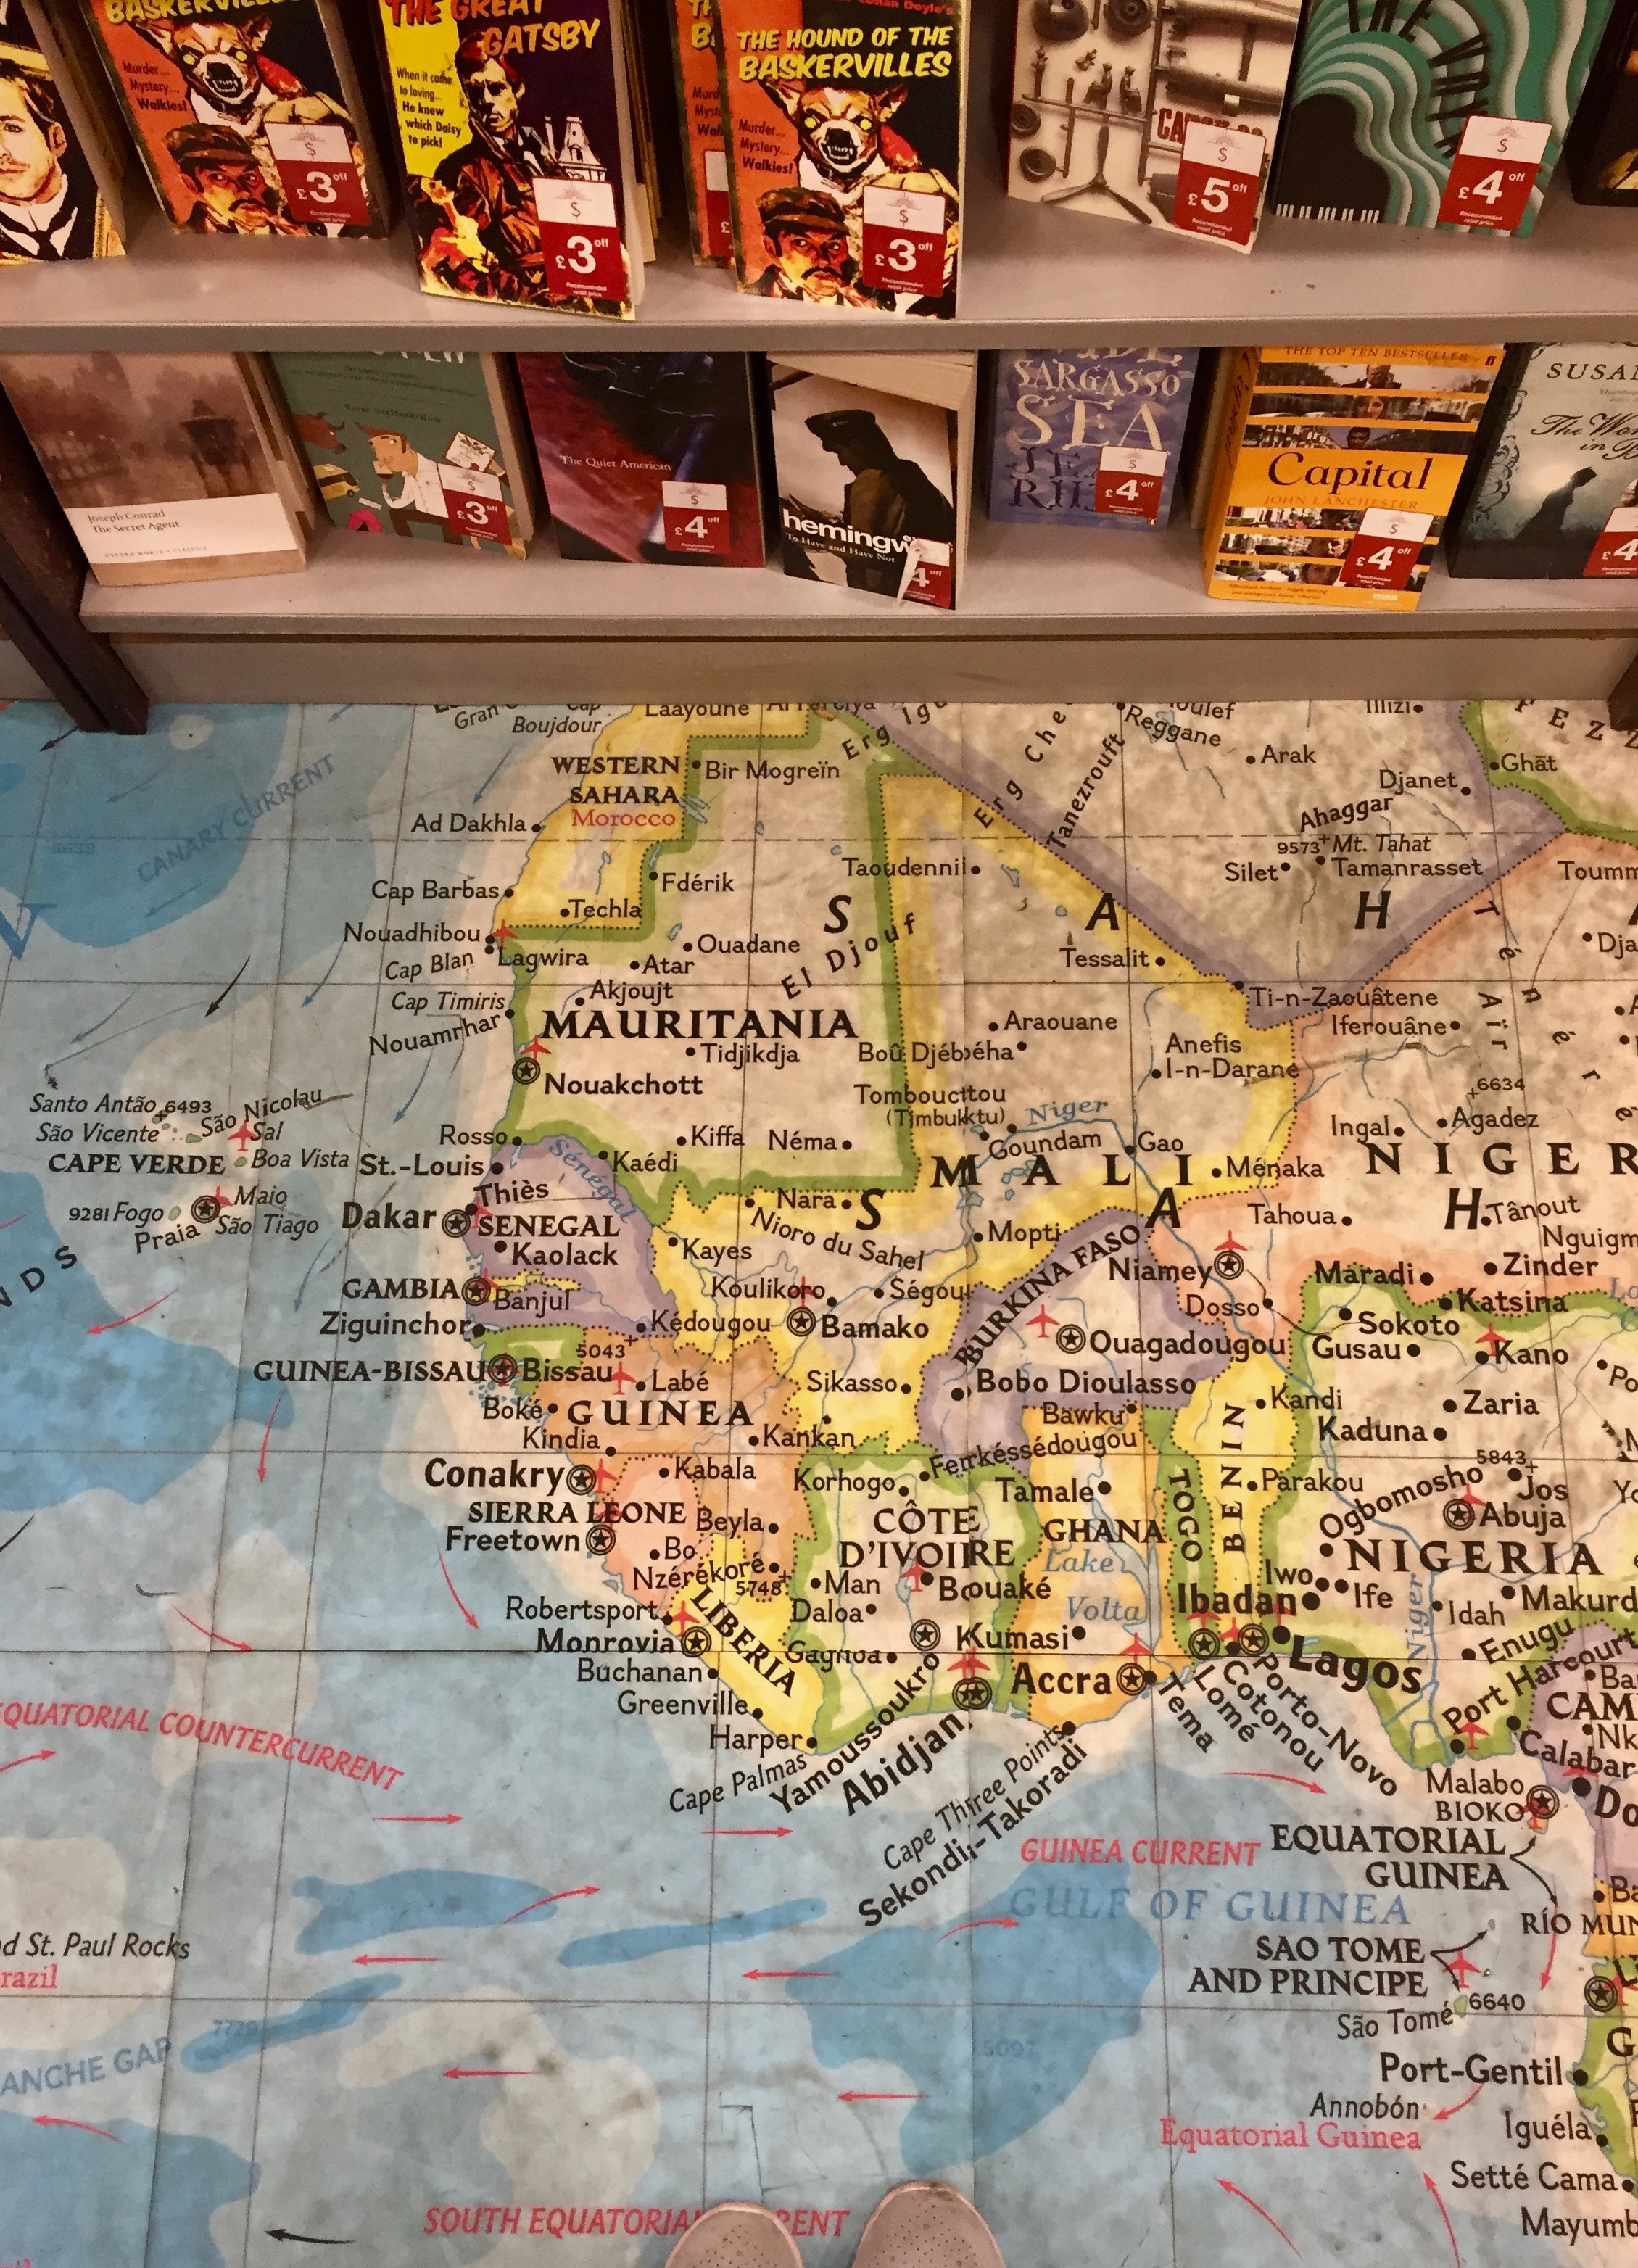 March 2018 meganhallinan i found myself initially heading to africa located downstairs on the lower floor near the globes and charts i scanned for books both familiar and gumiabroncs Gallery